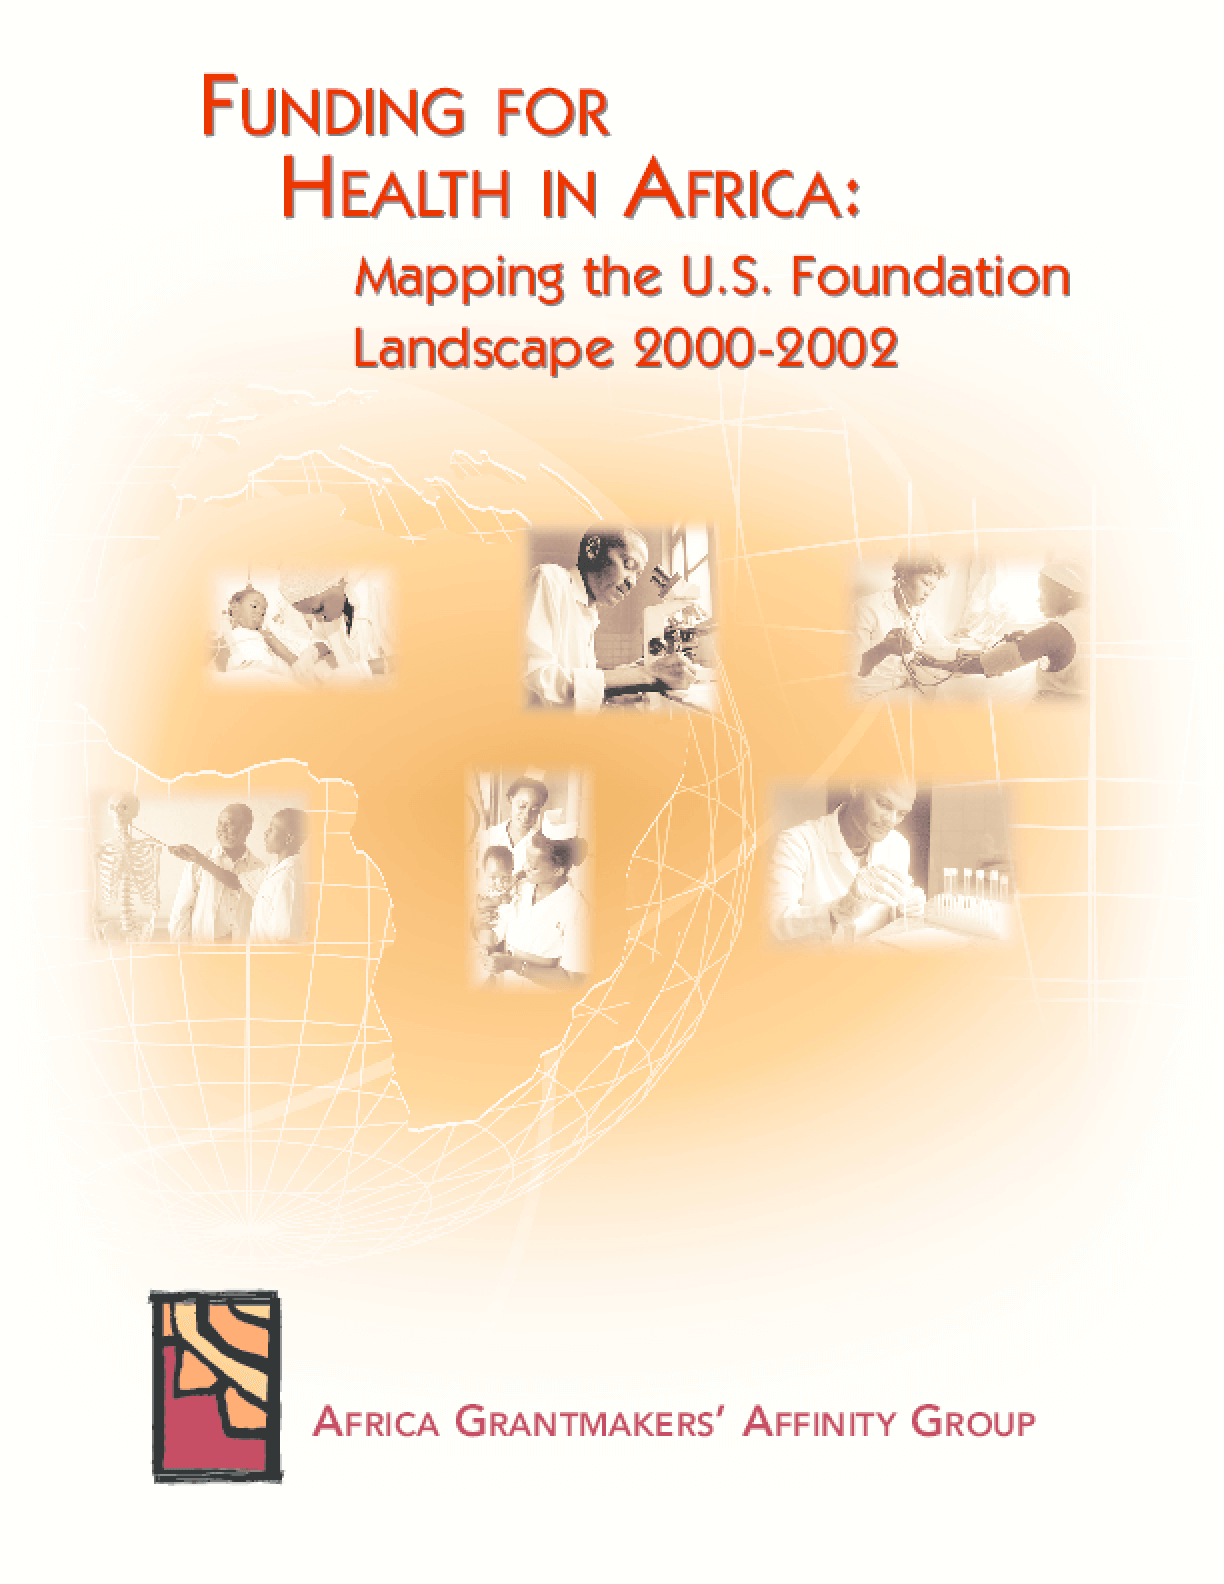 Funding for Health in Africa: Mapping the U. S. Foundation Landscape, 2000-2002